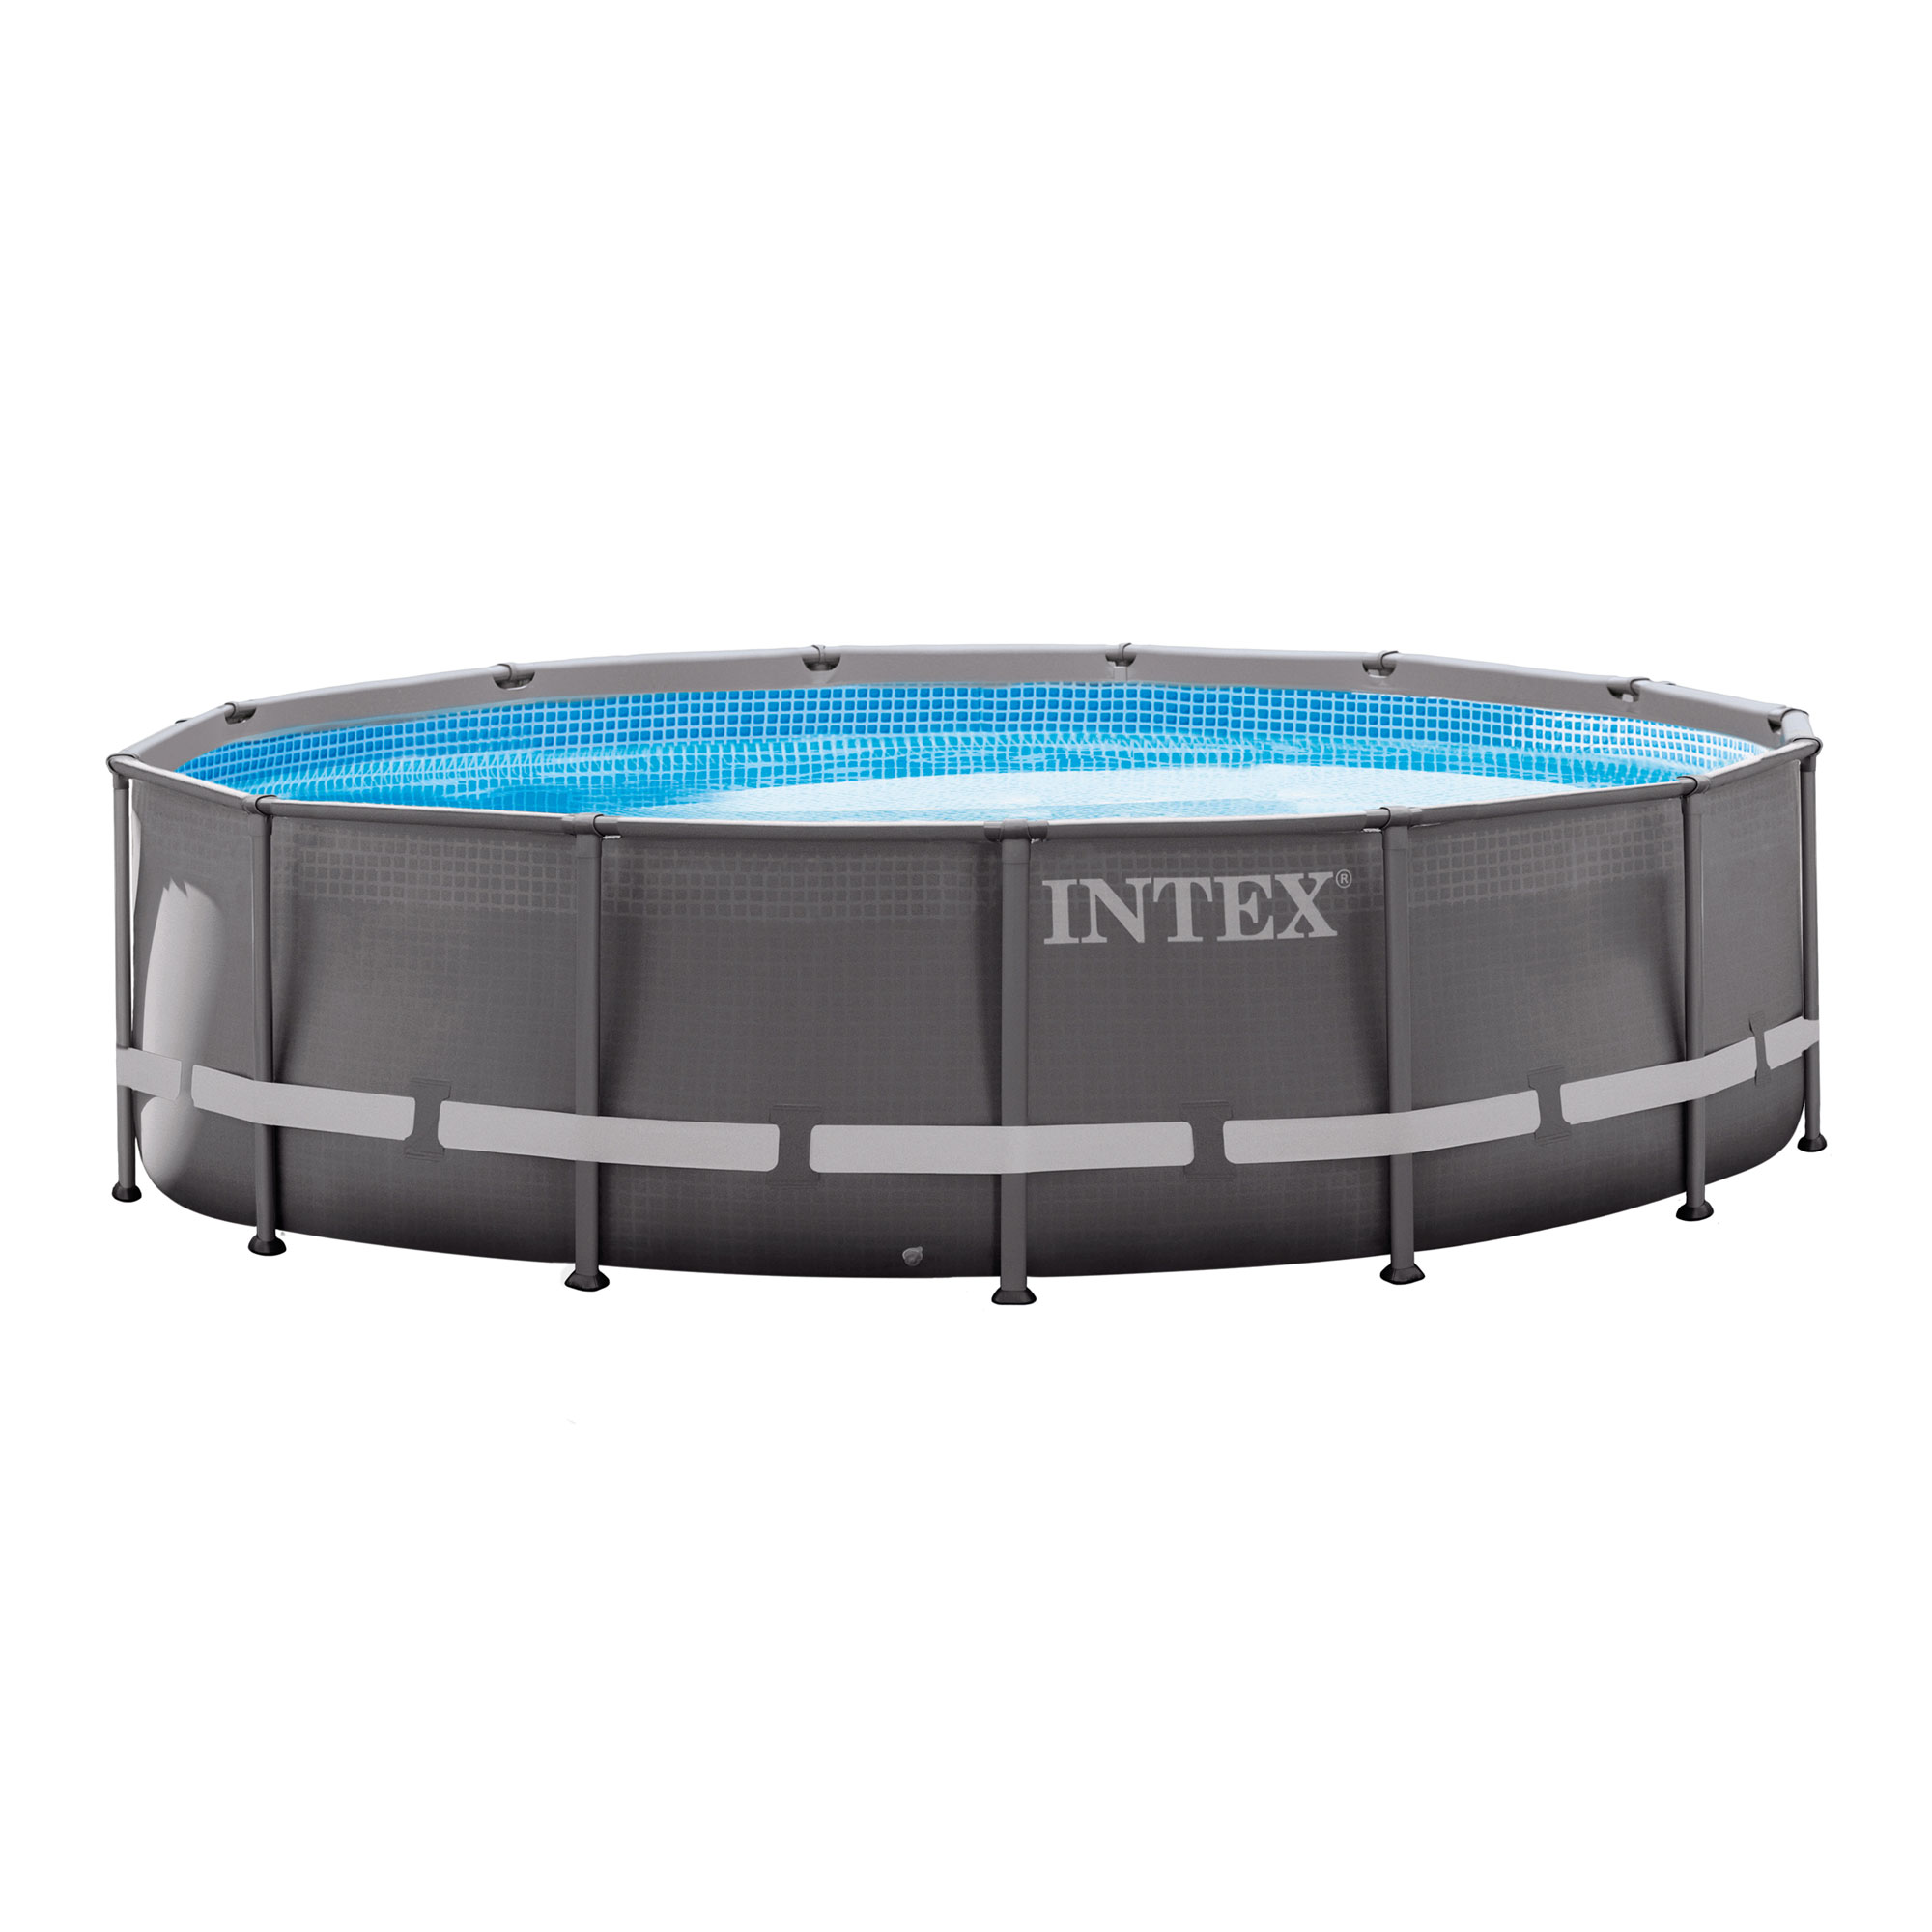 """Intex 14' x 42"""" Ultra Frame Above Ground Swimming Pool Set with Ladder & Pump by Intex"""